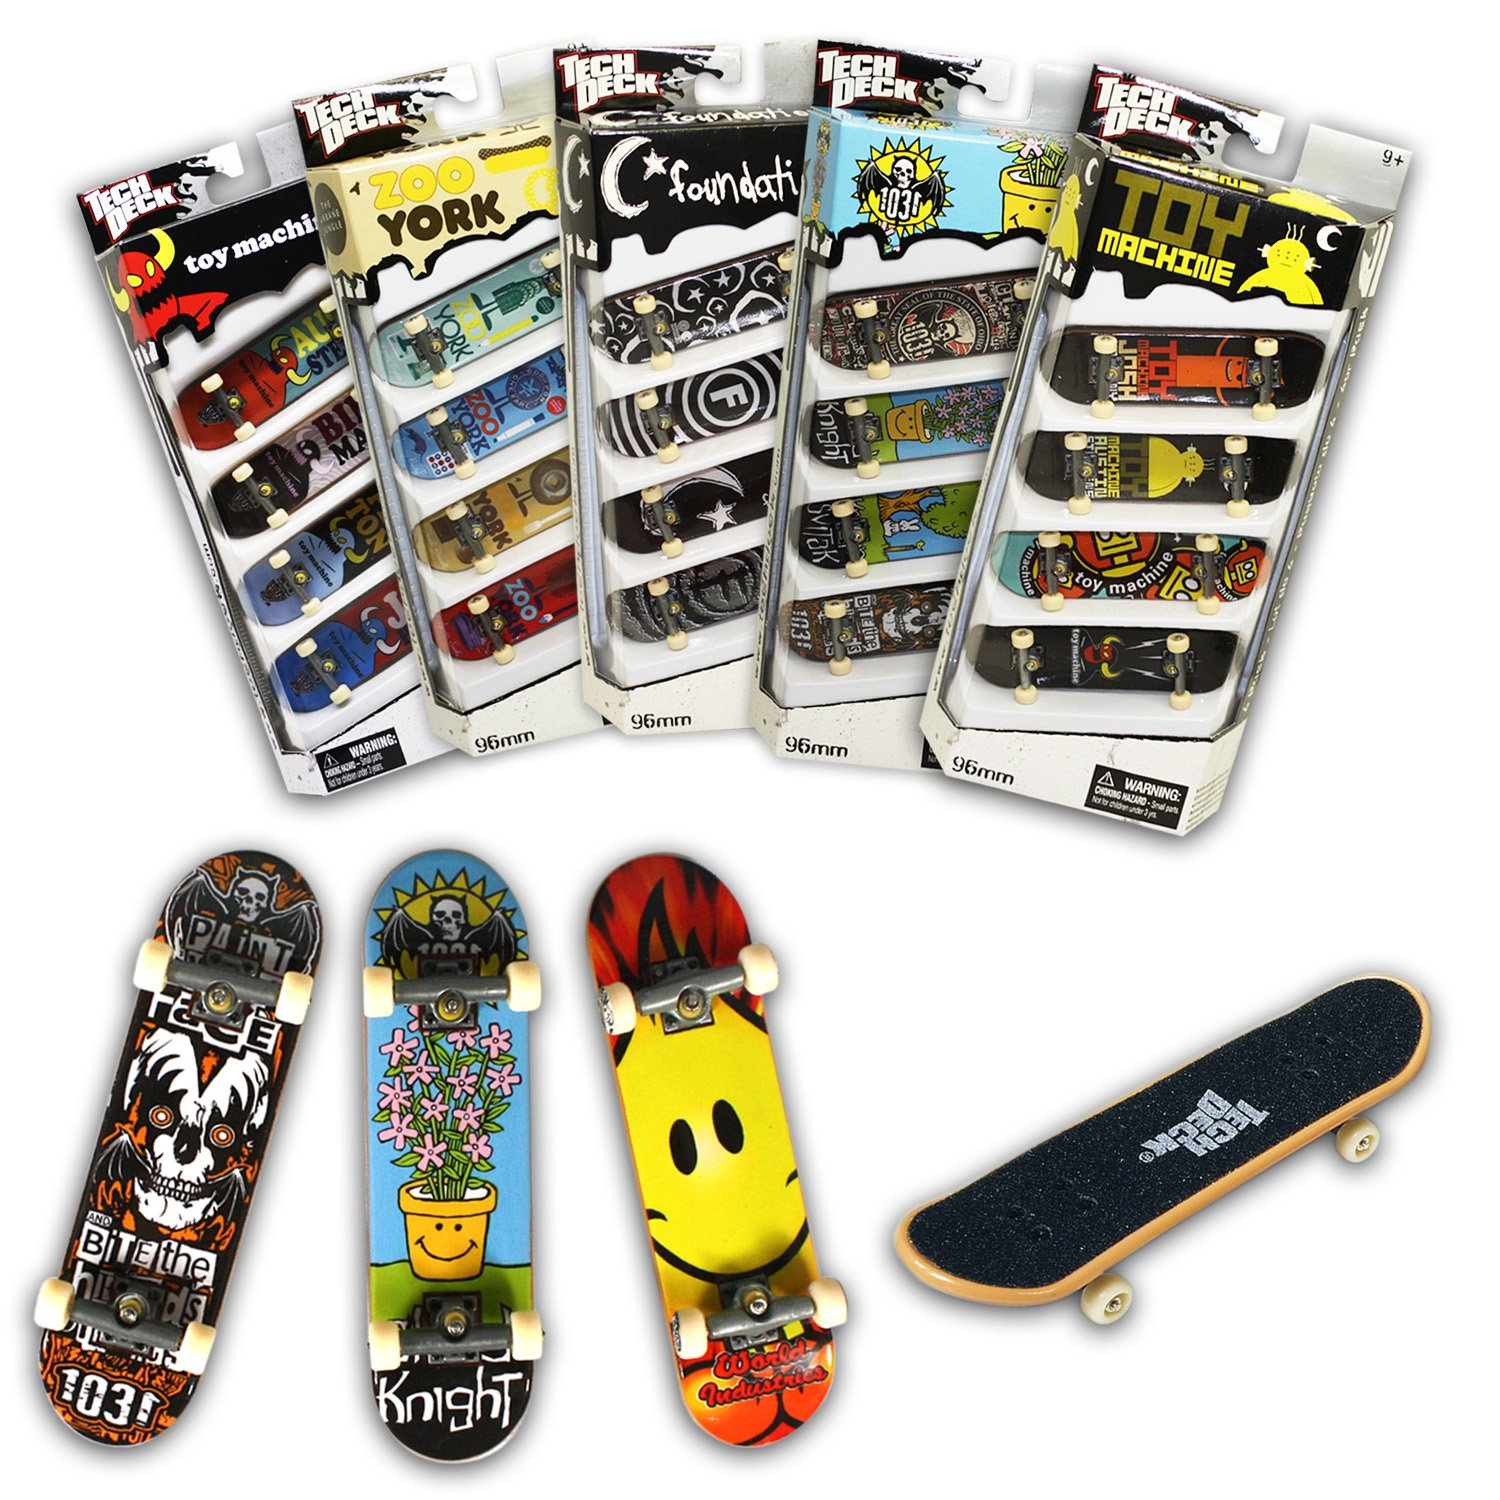 Tech Deck 96MM Fingerboards 4 Pack (Styles vary) by Spin Master (Image #1)